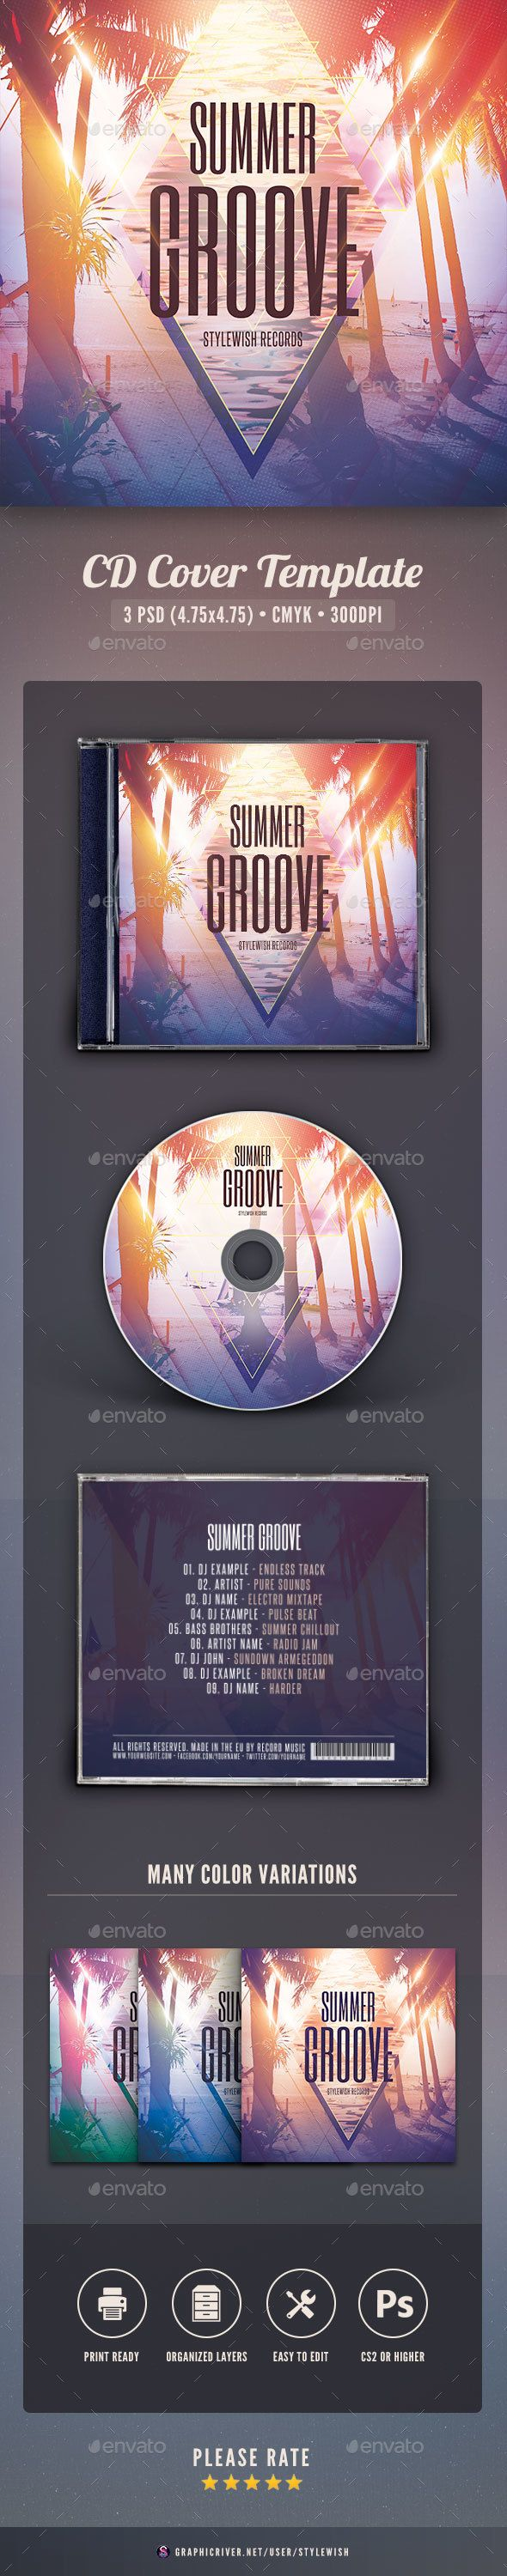 66 best CD Jackets images – Psd Album Cover Template